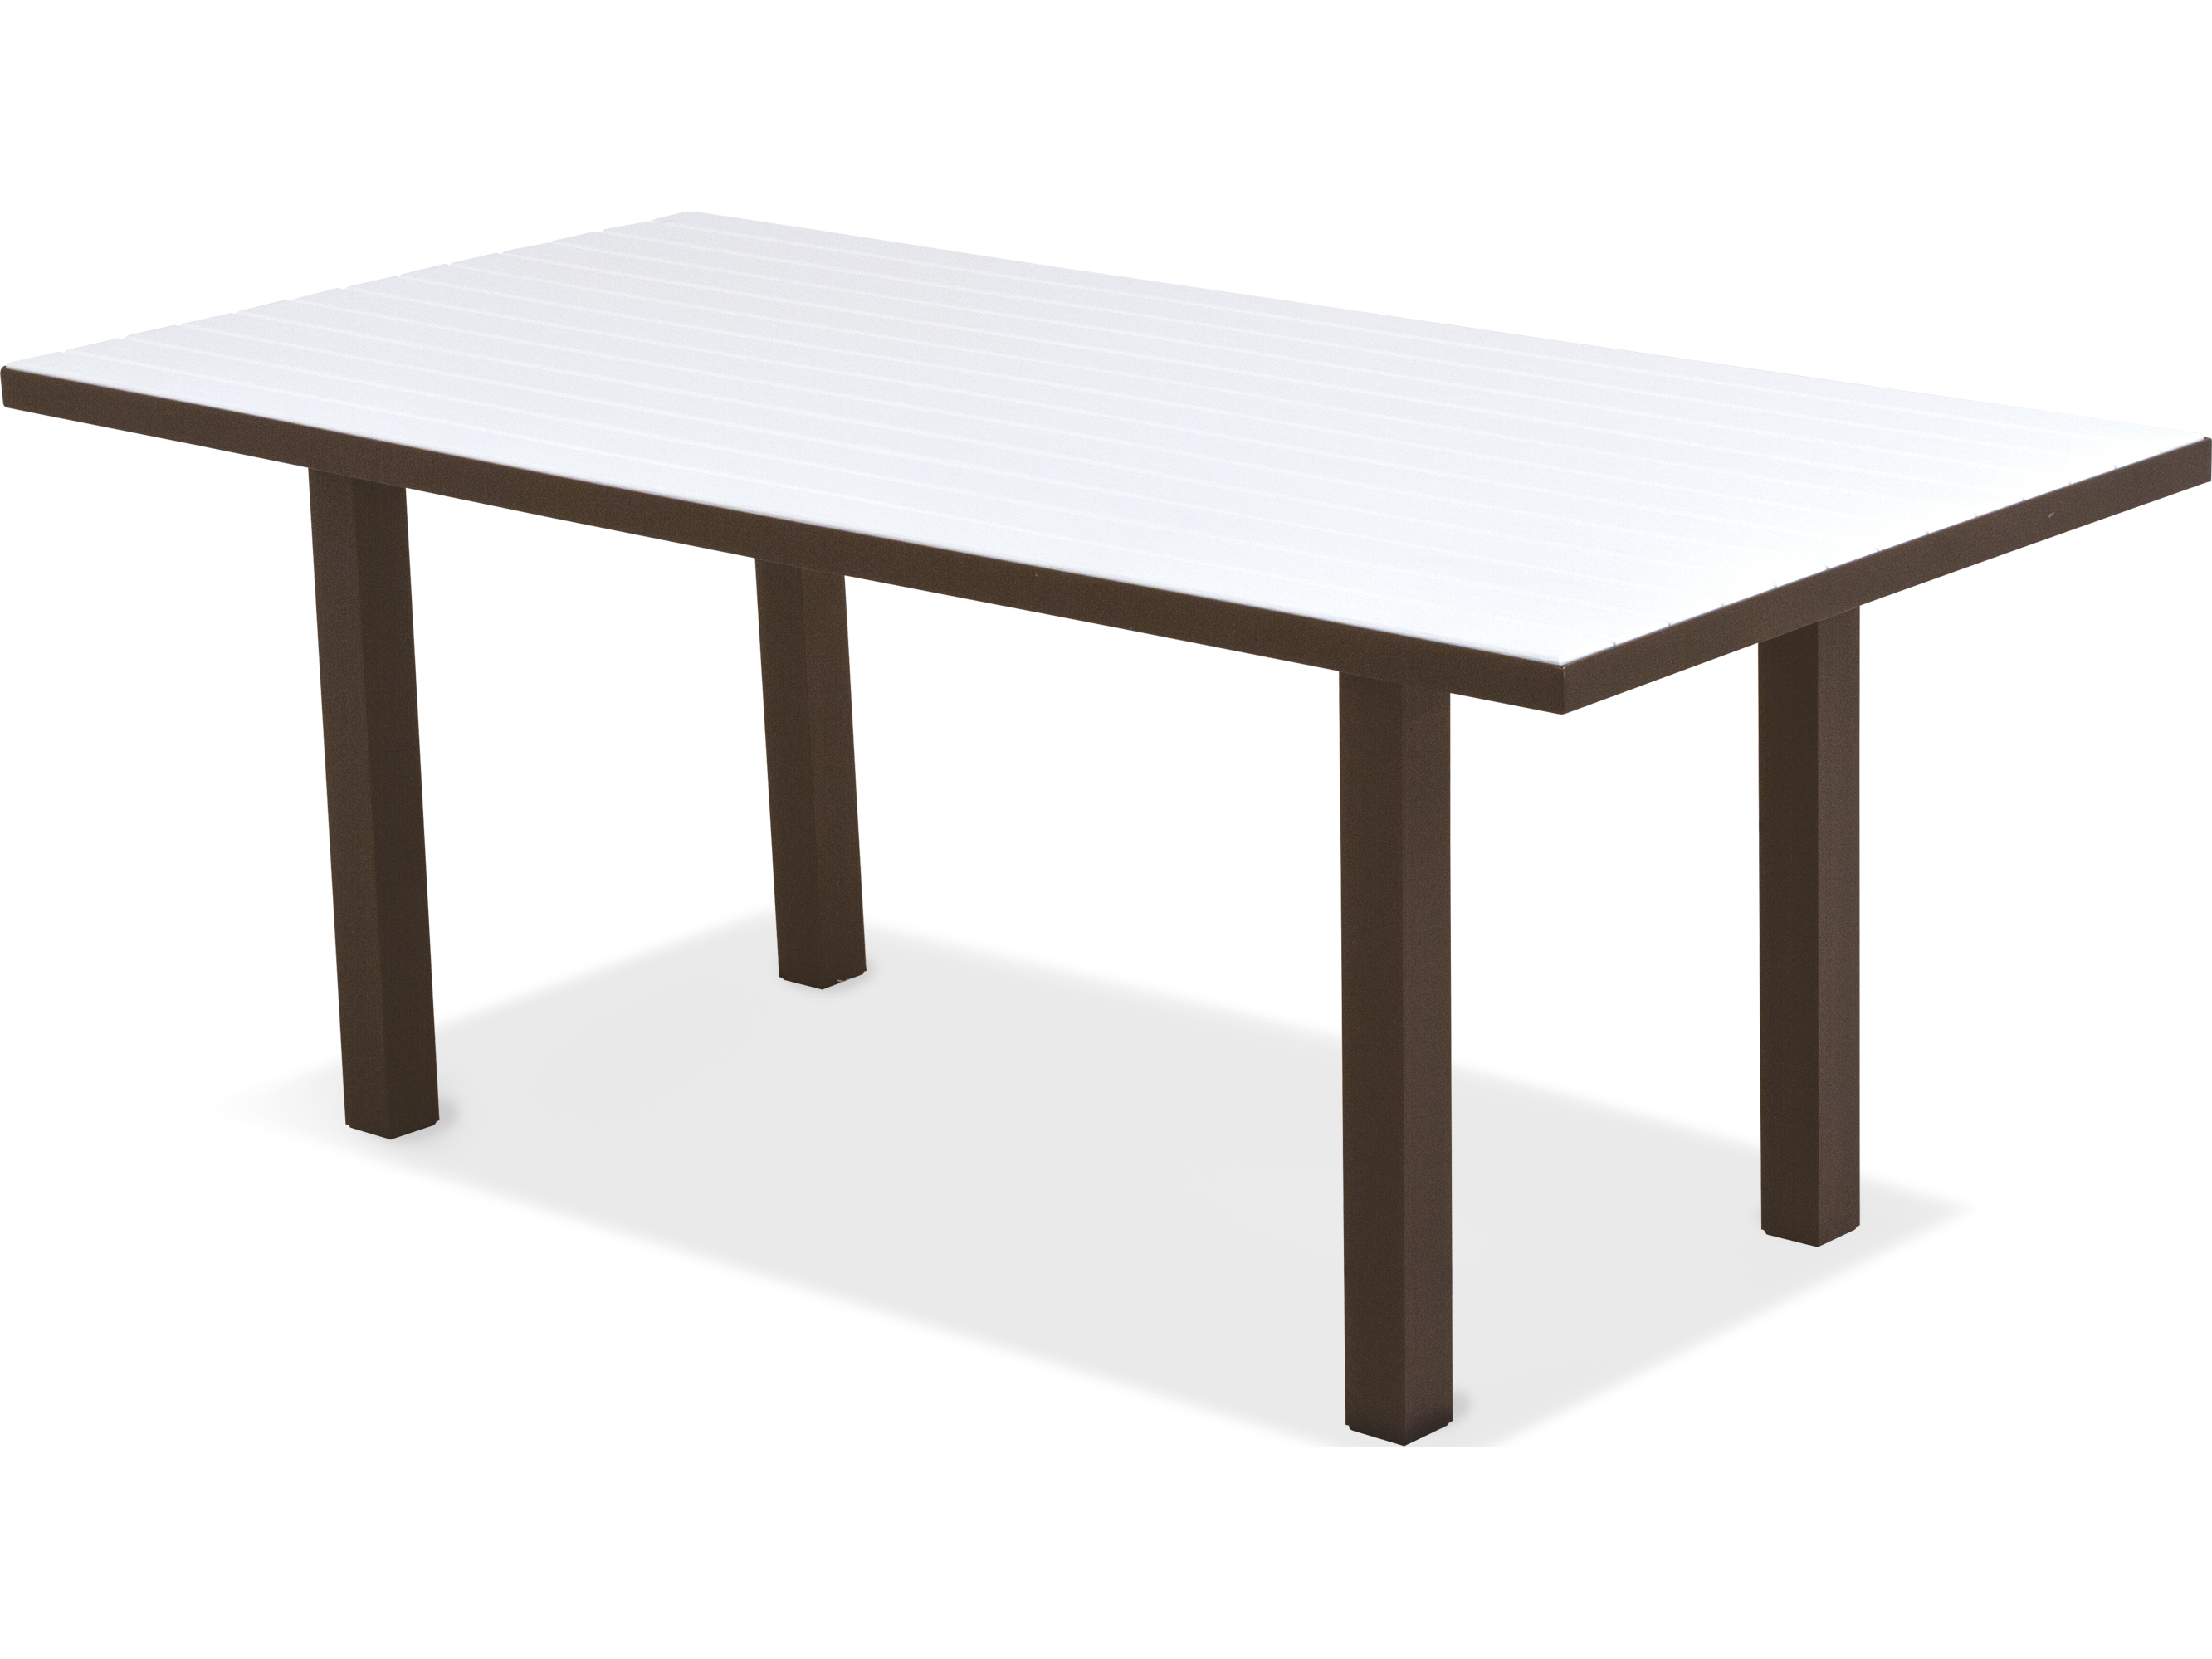 Euro Recycled Plastic 72 X 36 Rectangular Dining Table AT3672